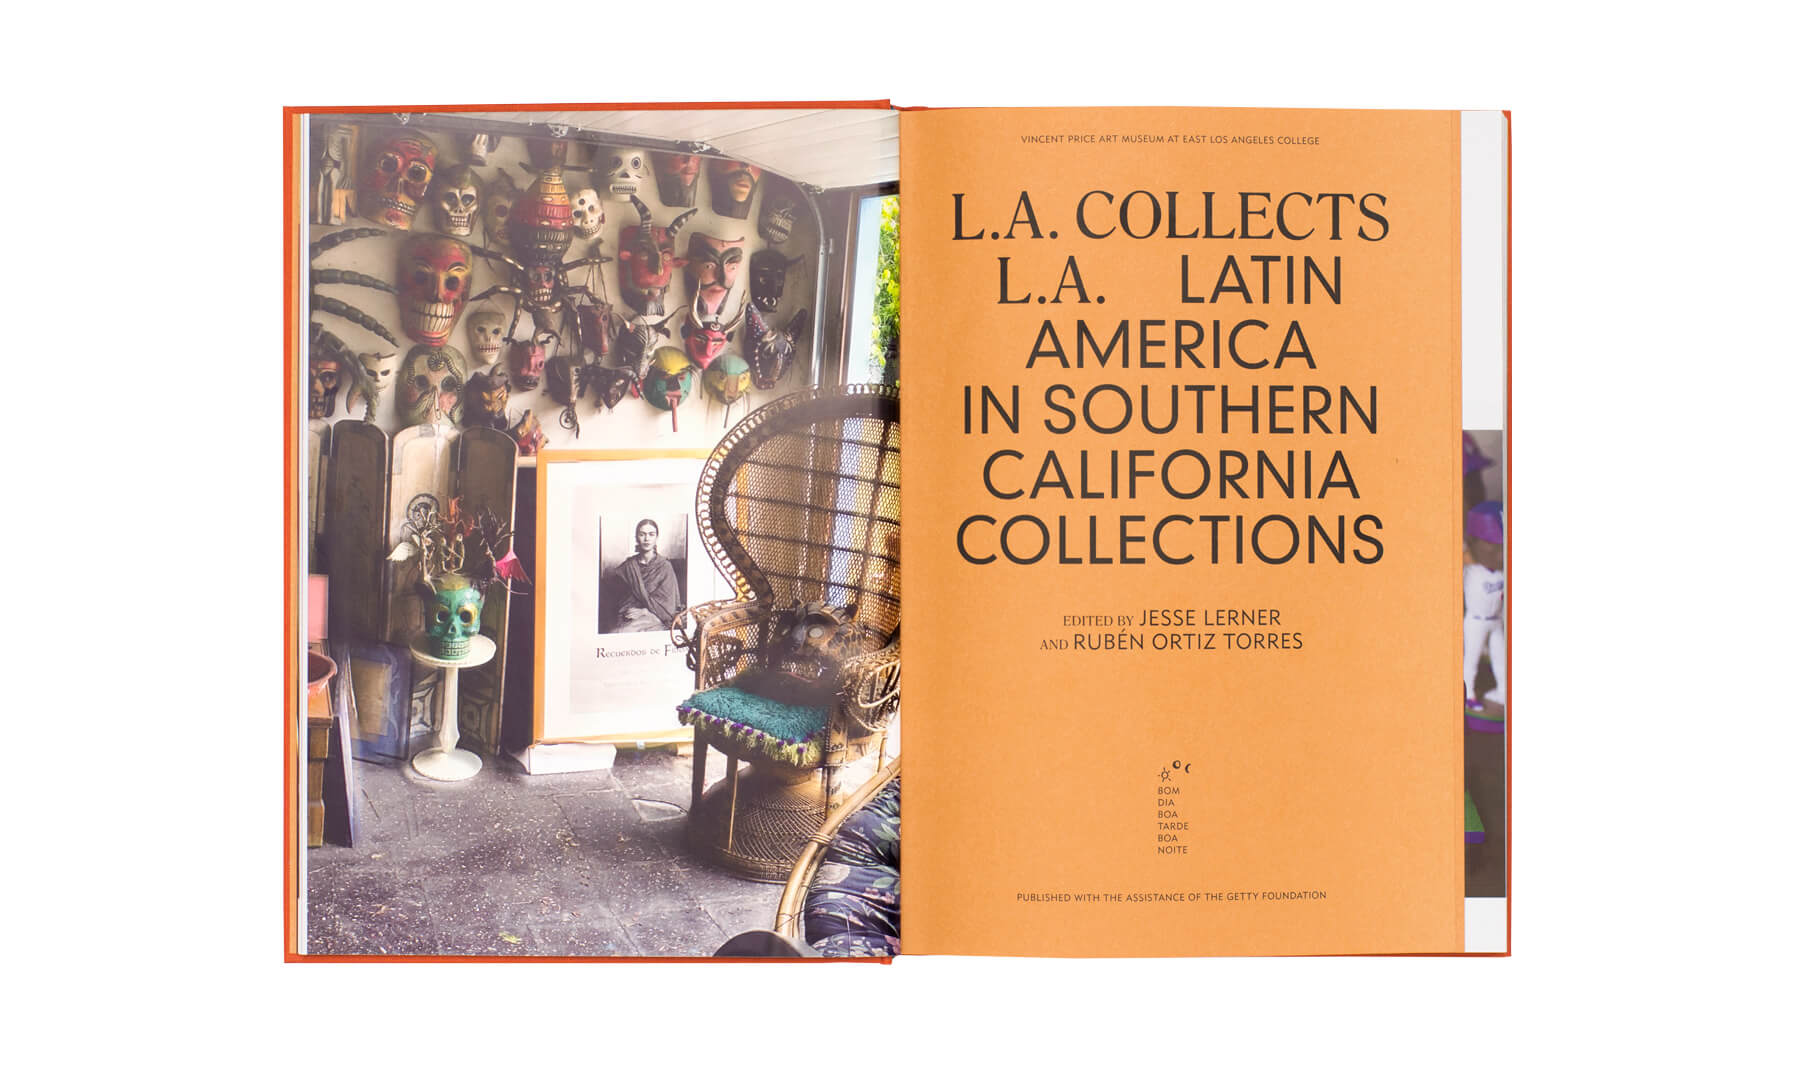 Product image of L.A. collects L.A. – Latin America in Southern California Collections